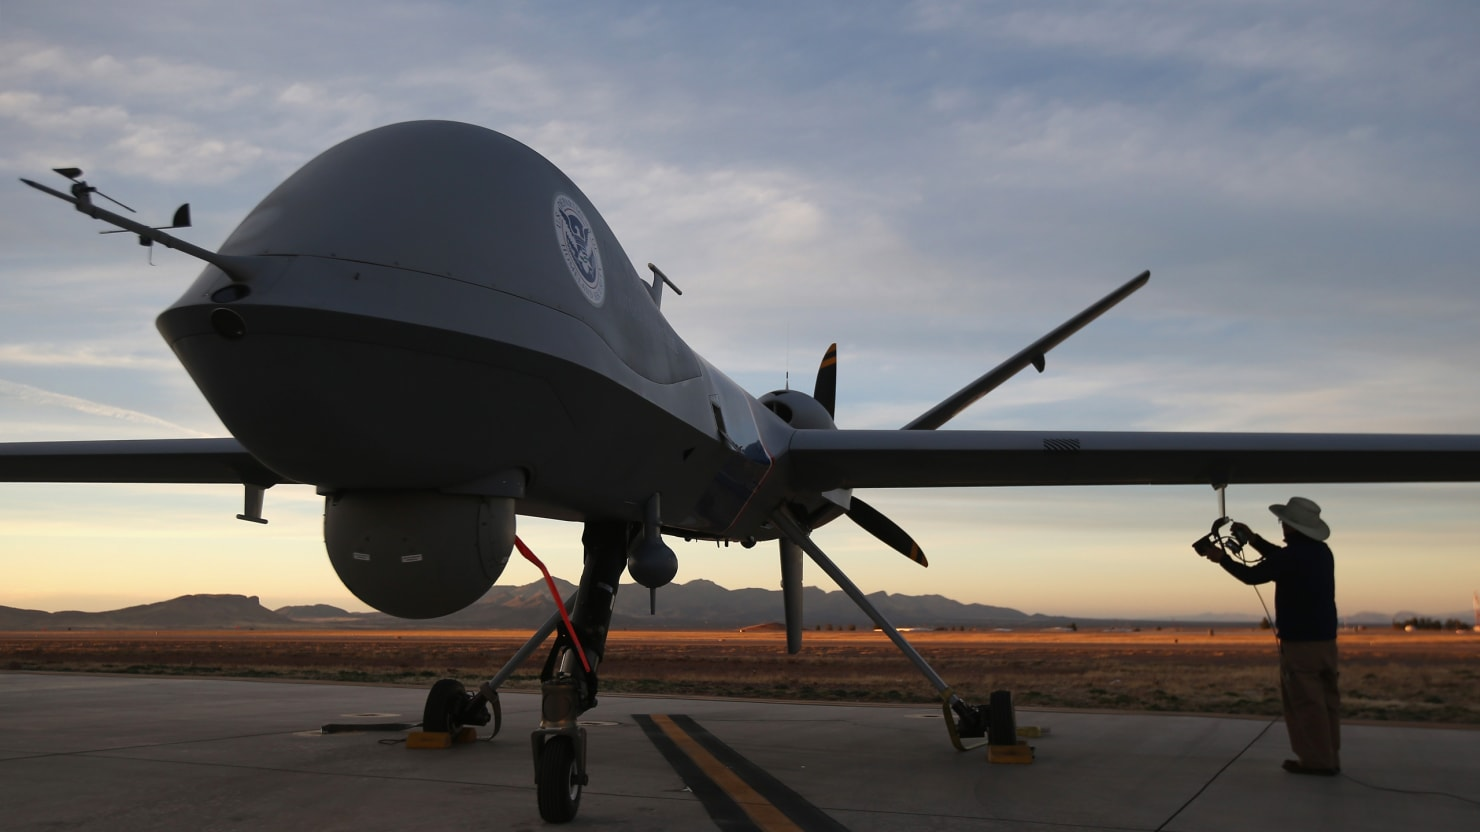 When Drones Come to America, What Happens Then?